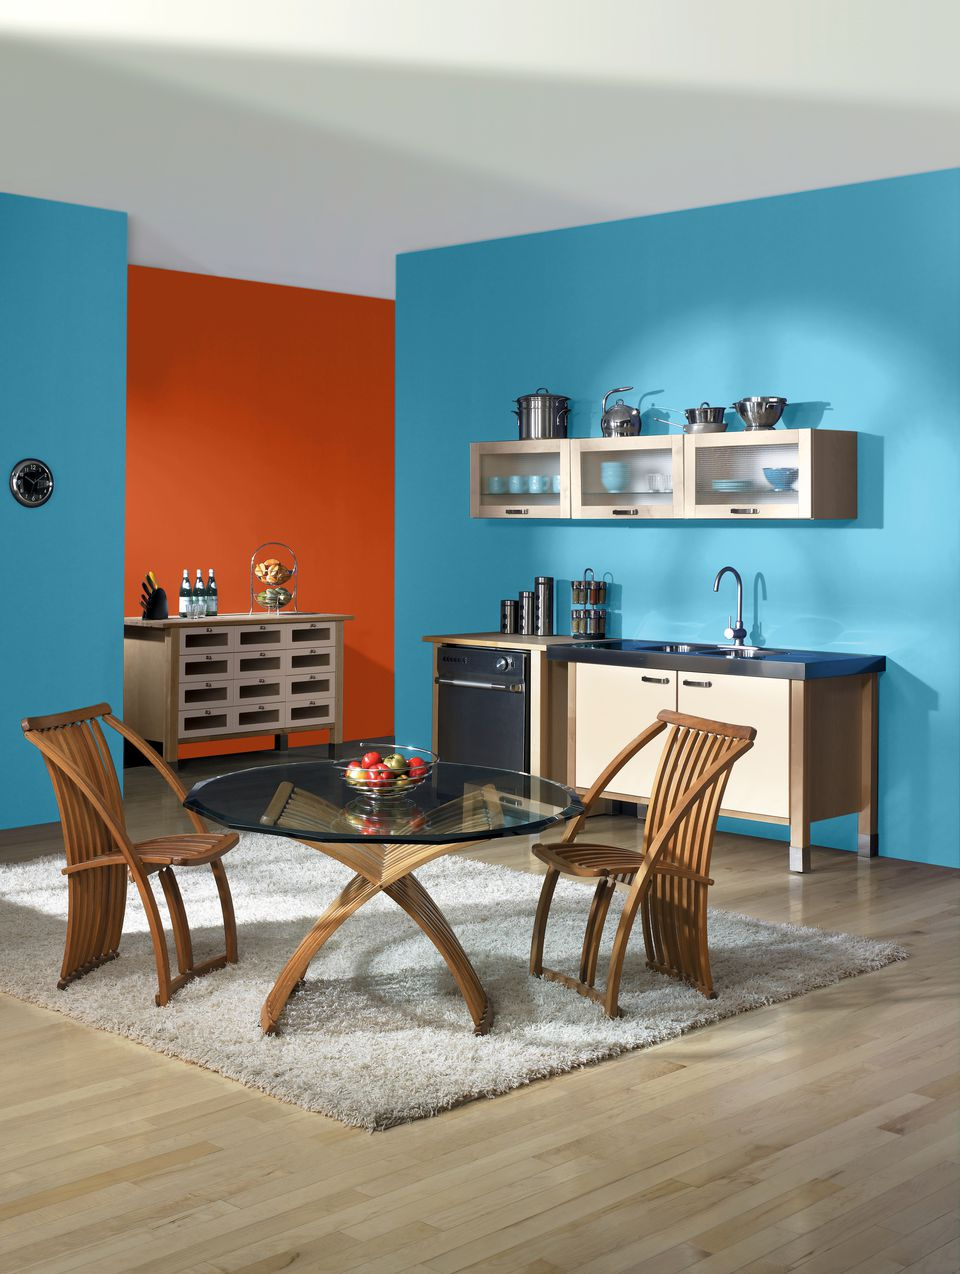 10 Easy Ways to Add Color to Your Kitchen | Color.About.com